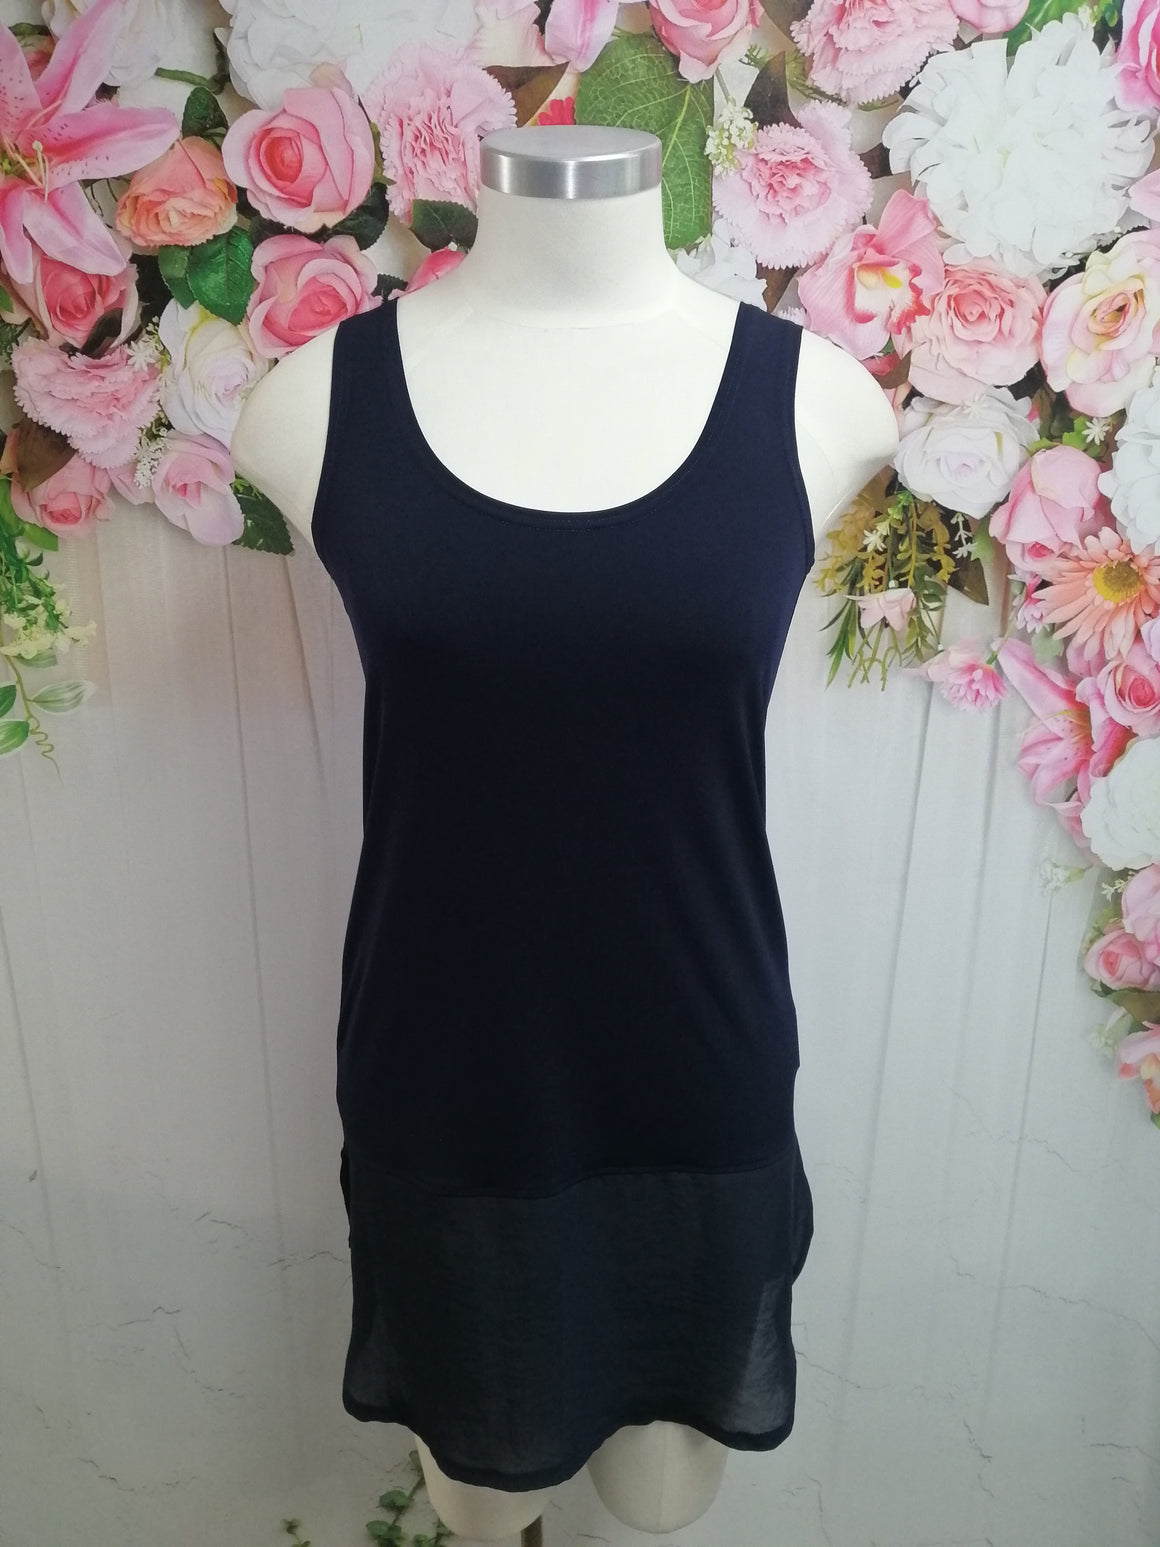 Bittermoon Long Layering Cami - Navy - Fashion Focus